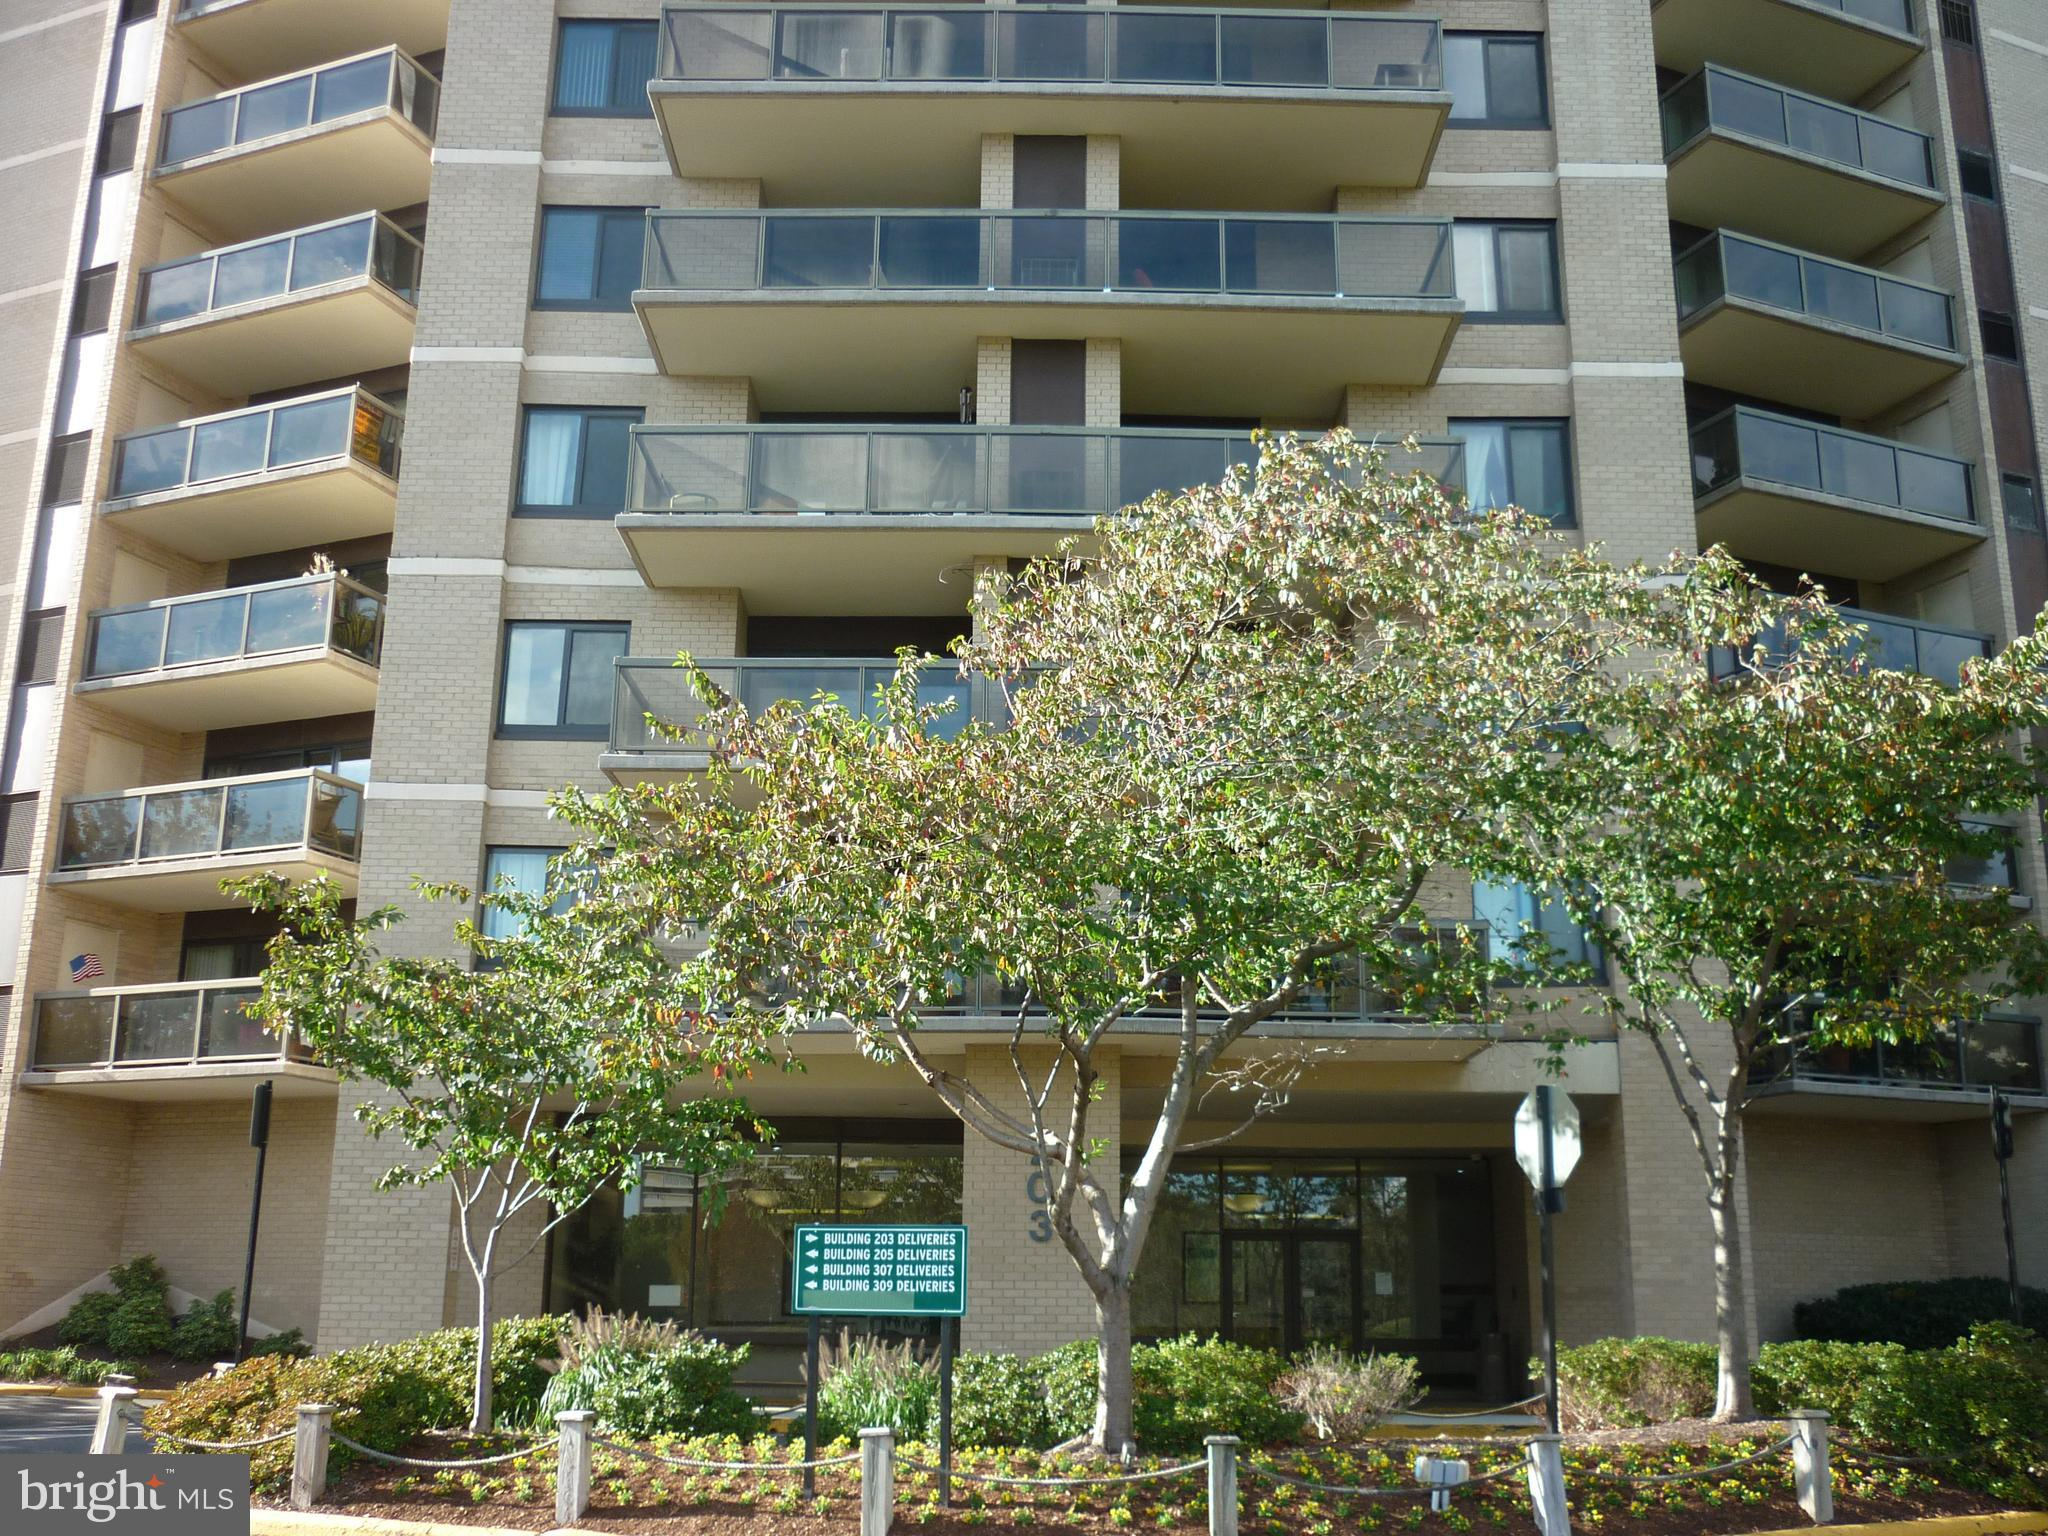 Lowest priced 2 bedroom/ 2 bath on the market in Watergate at Landmark! Investor's dream! Amazing value for resort like living in the heart of Alexandria! Inside the Beltway, convenient to all major roads.  You will never have to leave this beautiful community! Condo Fees include ALL UTILITES (except cable). 11th floor unit with great patio views! Beautiful new hardwood floors throughout! Large master bedroom and eat in area off kitchen/living room. Needs work. Price reflects that the property is being sold as-is. This amenity rich complex includes... indoor and outdoor pools, meeting rooms, market and cafe, salon, playgrounds, tennis & Pickleball courts. Full work-out facility, even beach volleyball!! Complimentary shuttle to Van Dorn Metro. Easy access to 495/95/395! Minutes from Reagan National Airport, Pentagon, Old Town Alexandria, and the  new Amazon HQ2.  This is a bankruptcy Trustee sale. All terms of listing and sale are subject to court approval. Residents are living in  property.  Please wear masks and give 24 hours notice.